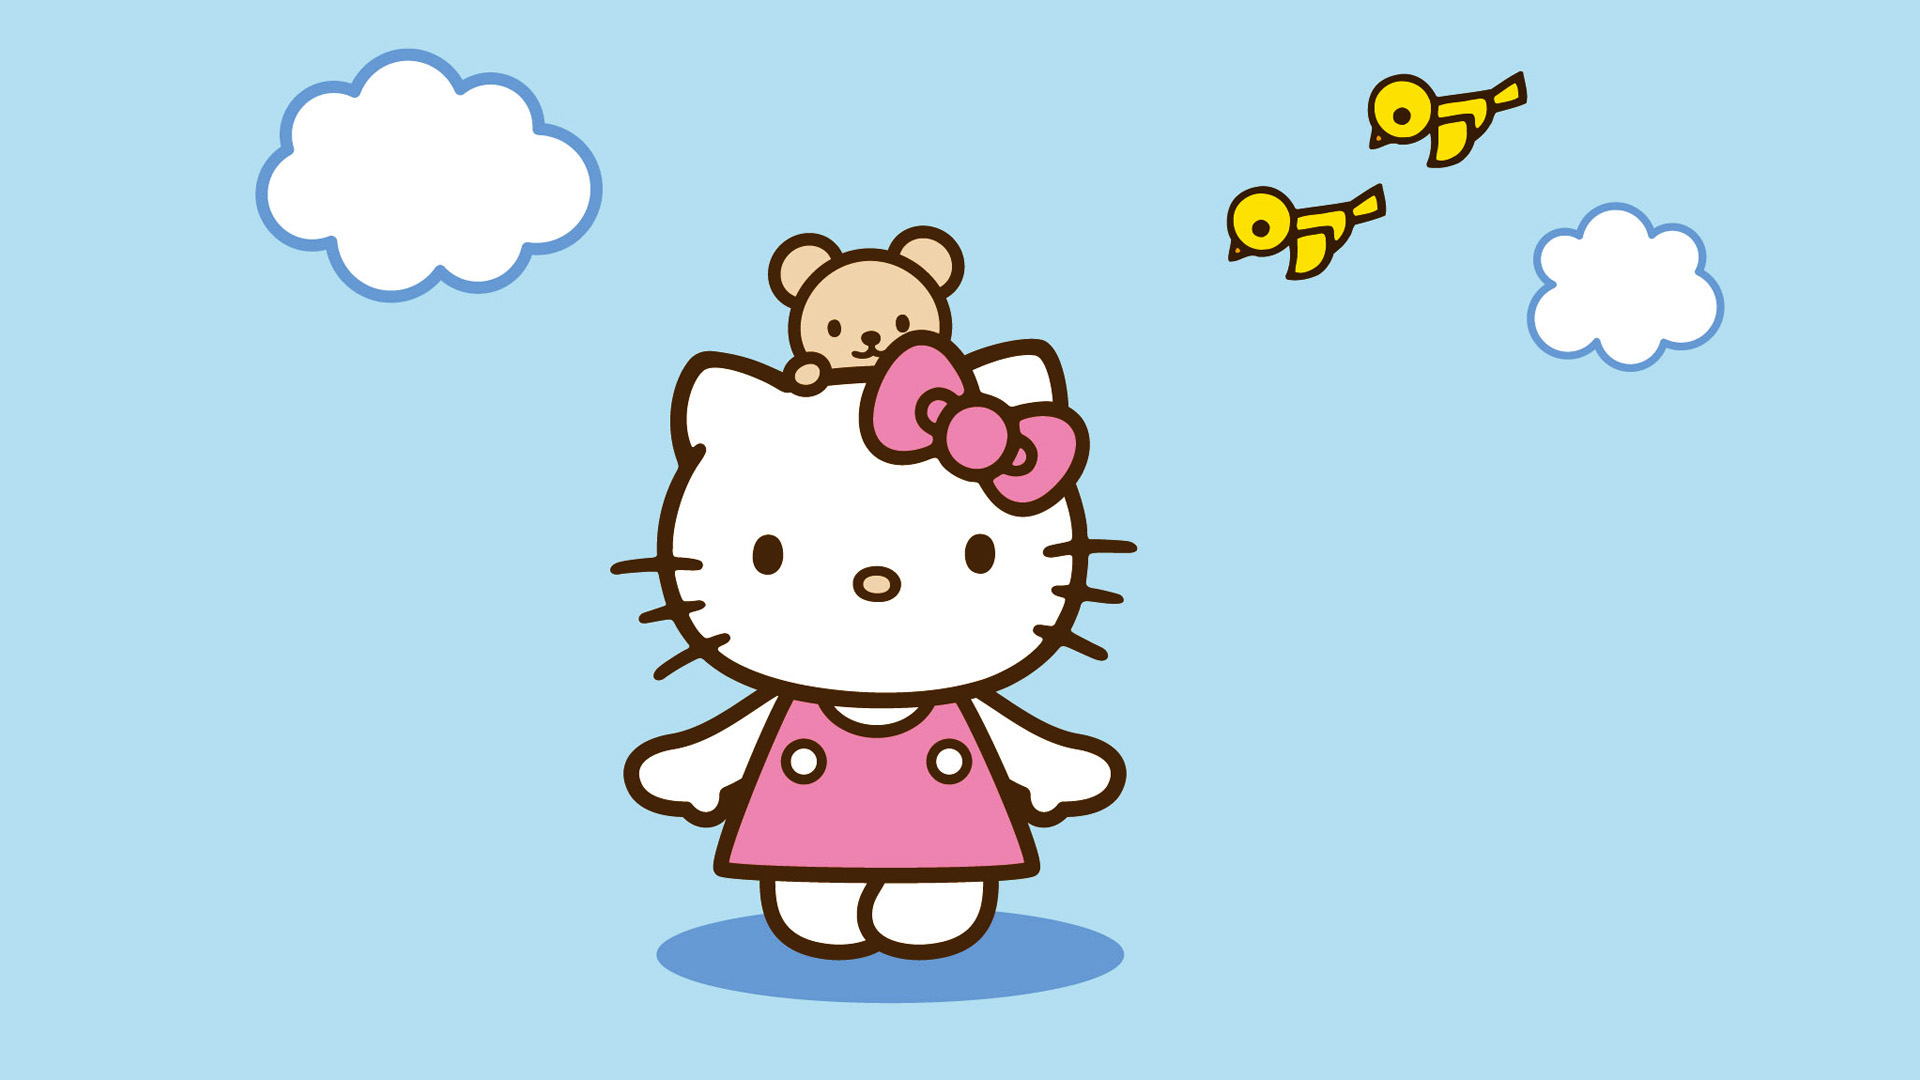 Simple Wallpaper Hello Kitty 1080p - hello-kitty-birds-1920x1080  Trends_47388.jpg